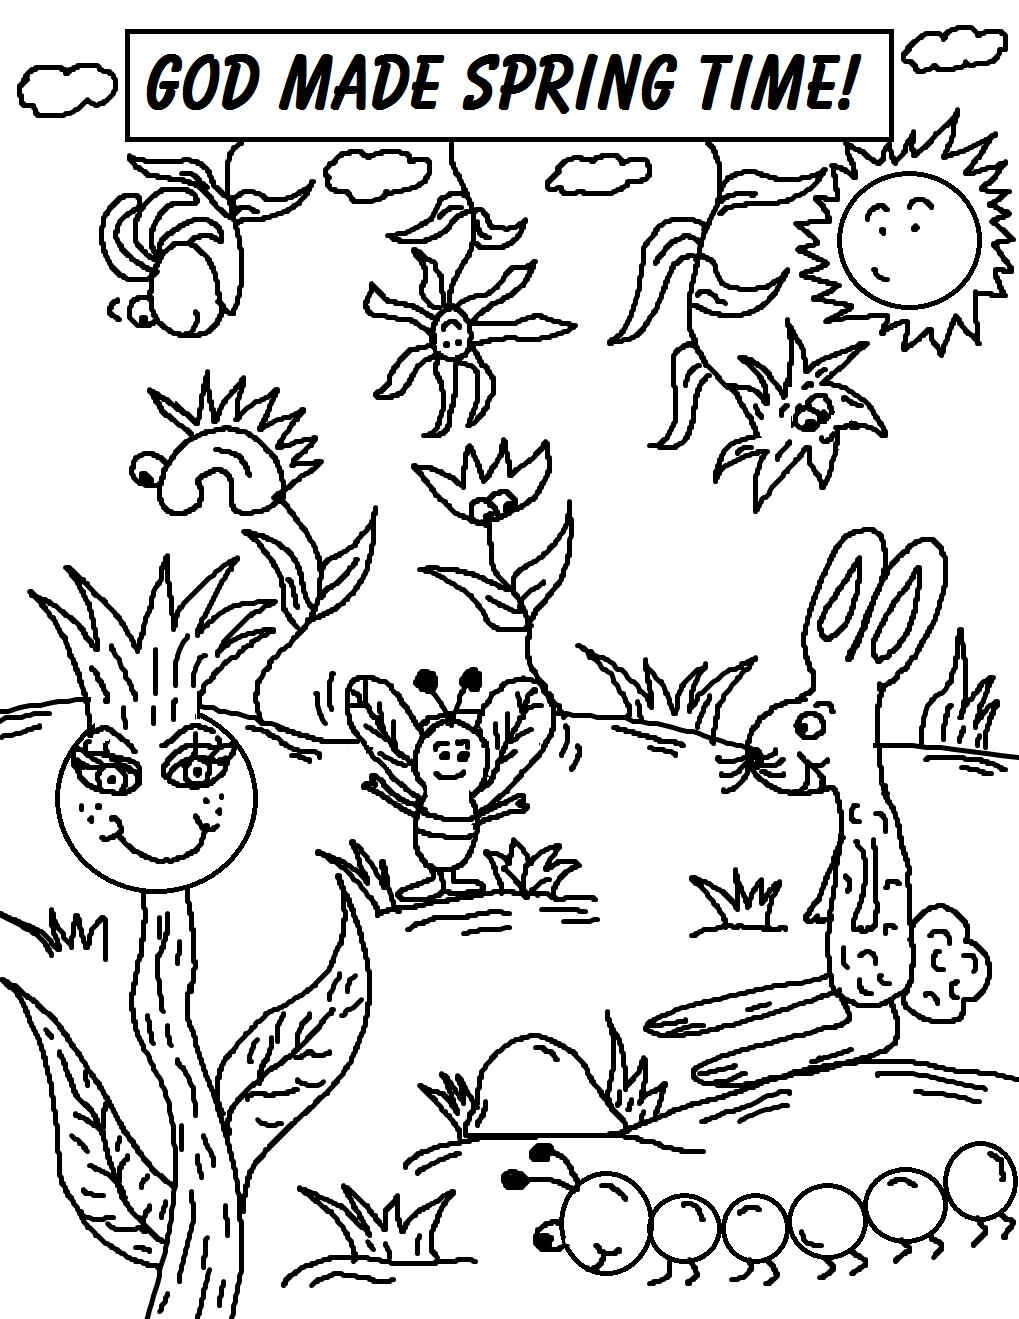 Coloring pages for spring -  Coloring Pages God Made Spring Time Download